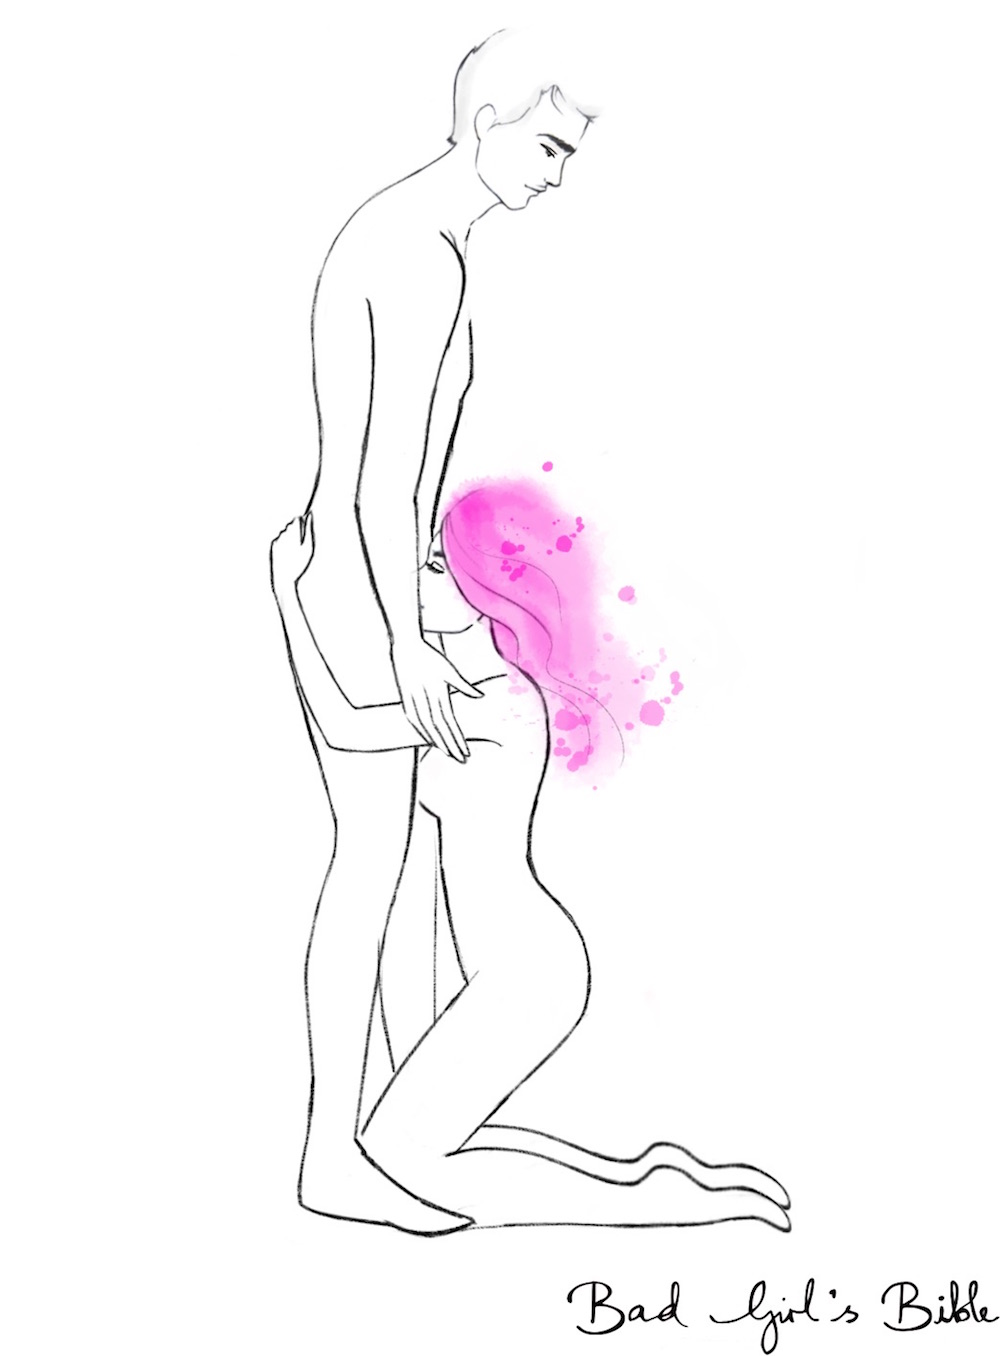 kneeling-blow-job-position